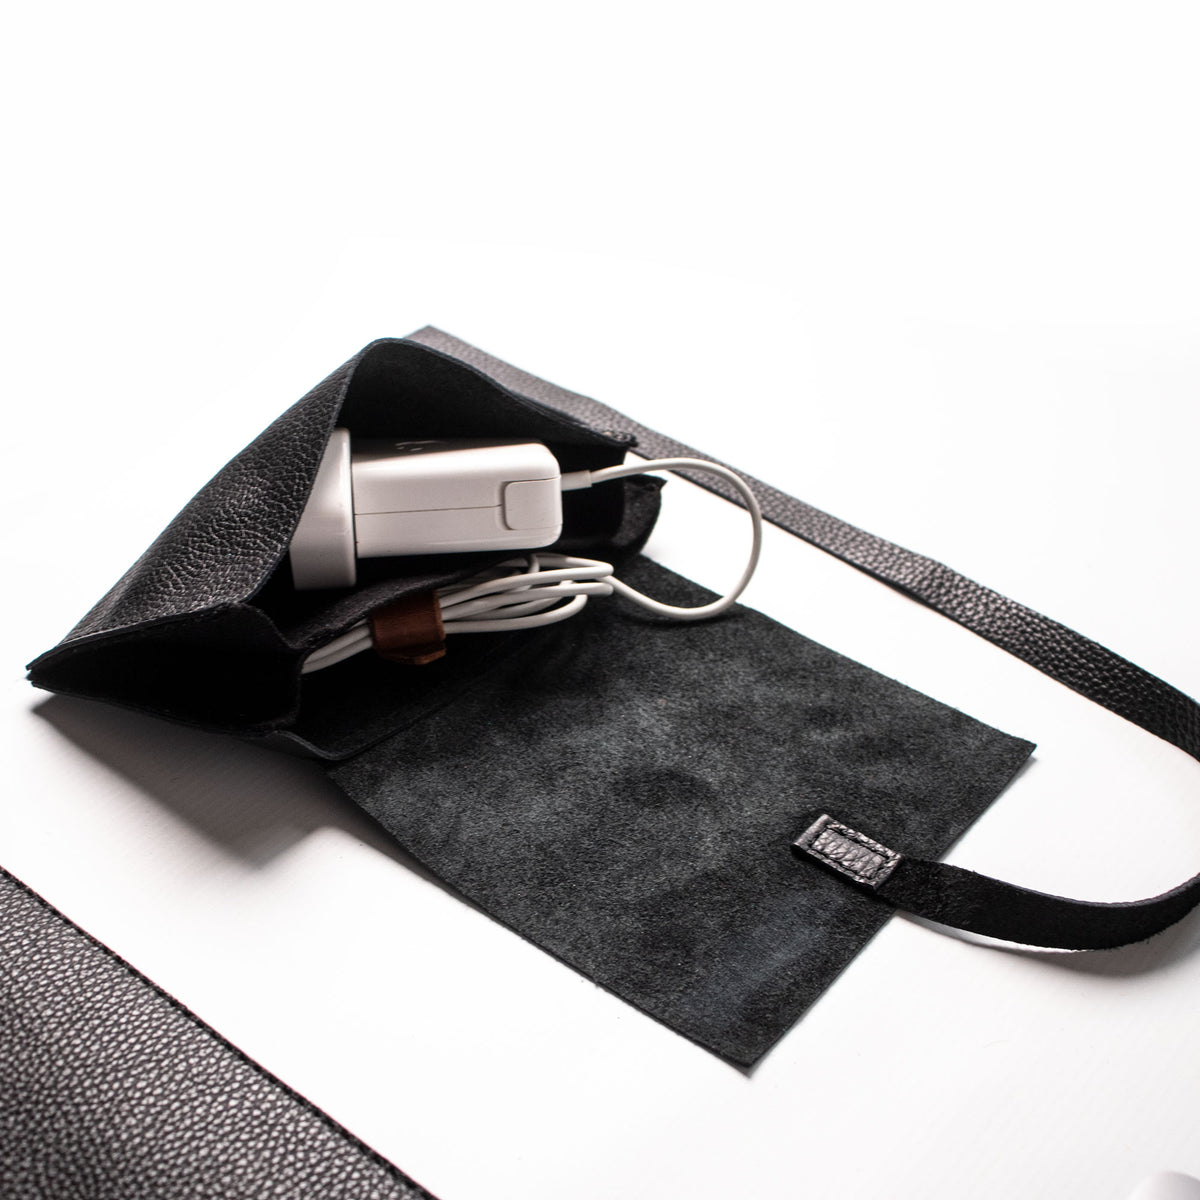 Cable Bag - Black and Black - RYAN London